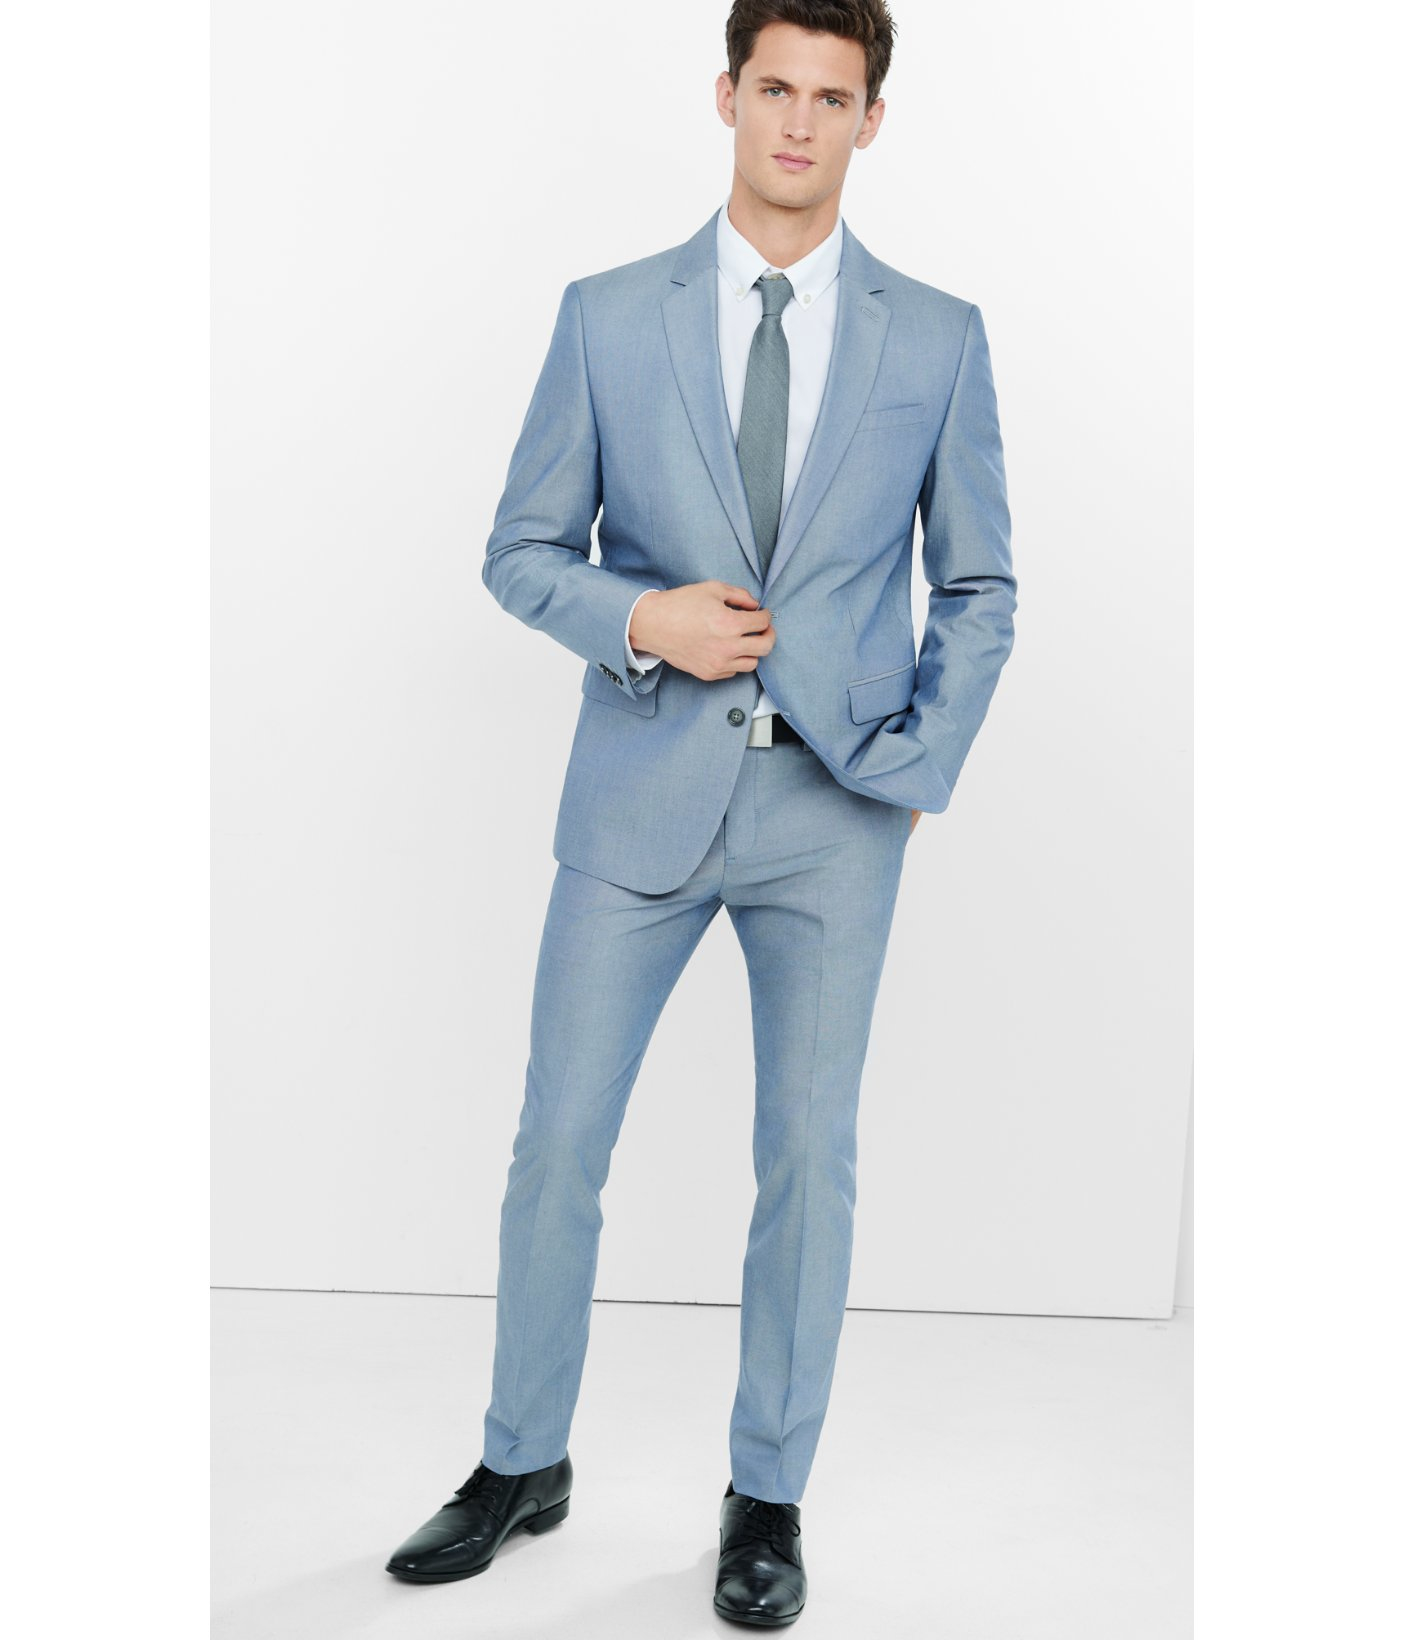 Lyst - Express Blue Oxford Cloth Innovator Suit Pant in Blue for Men